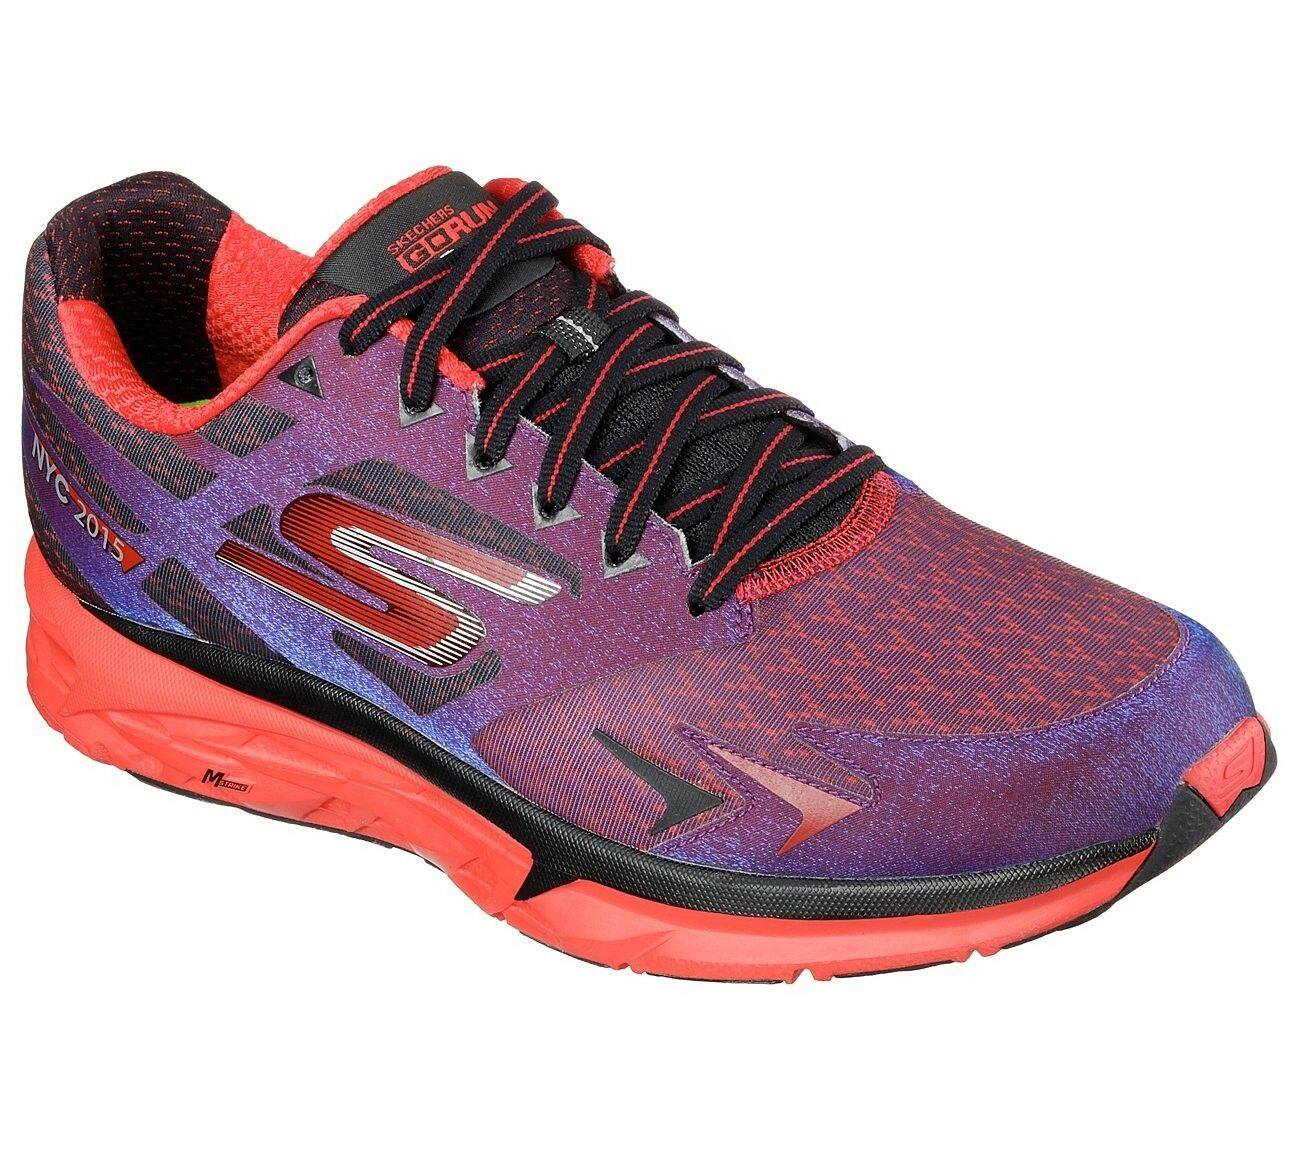 SKECHERS GORUN FORZA - NYC MA8 - This is not being made anymore